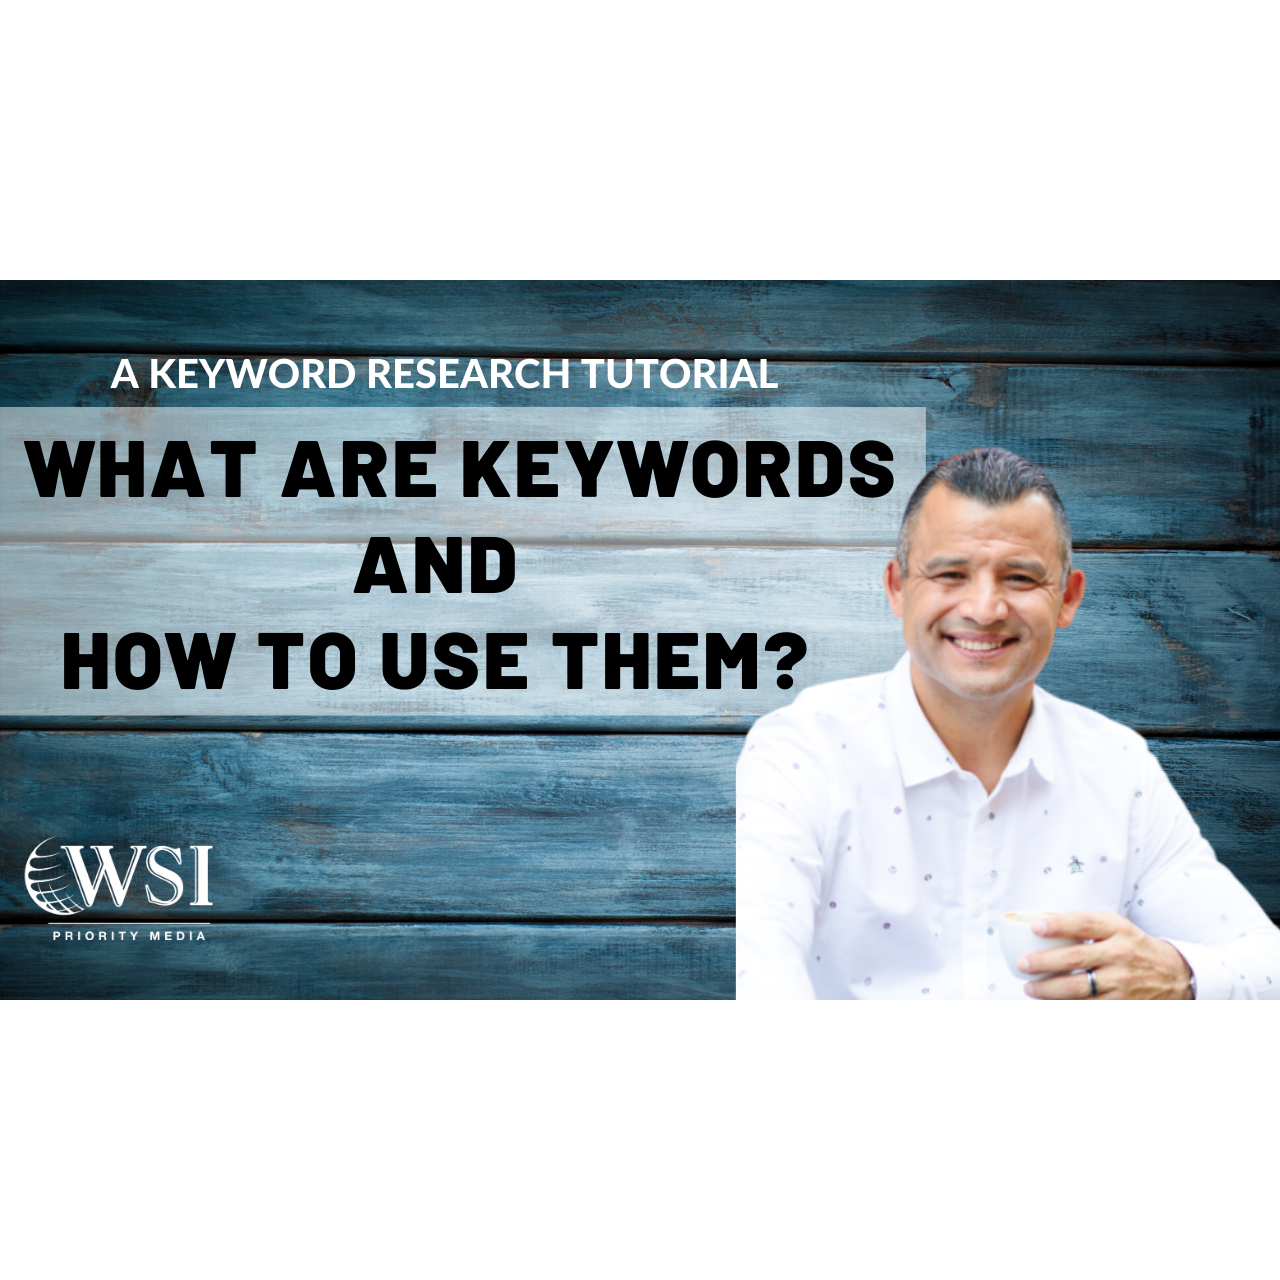 What Are Keywords And How To Use Them